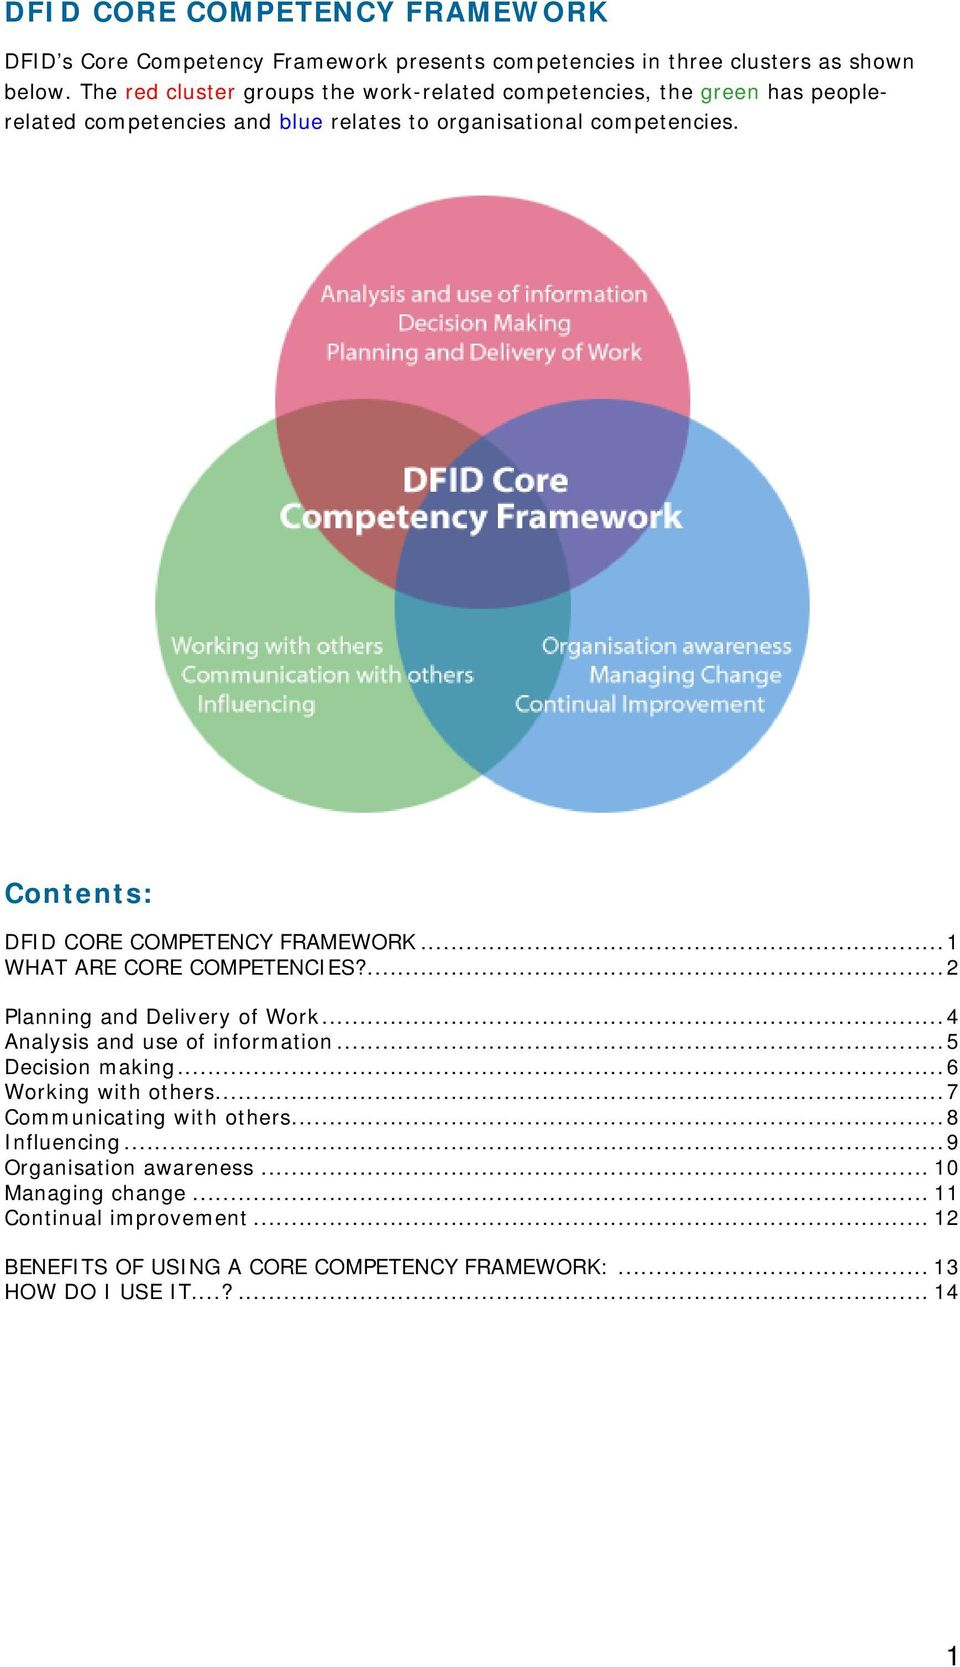 Contents: DFID CORE COMPETENCY FRAMEWORK...1 WHAT ARE CORE COMPETENCIES?...2 Planning and Delivery of Work...4 Analysis and use of information...5 Decision making.